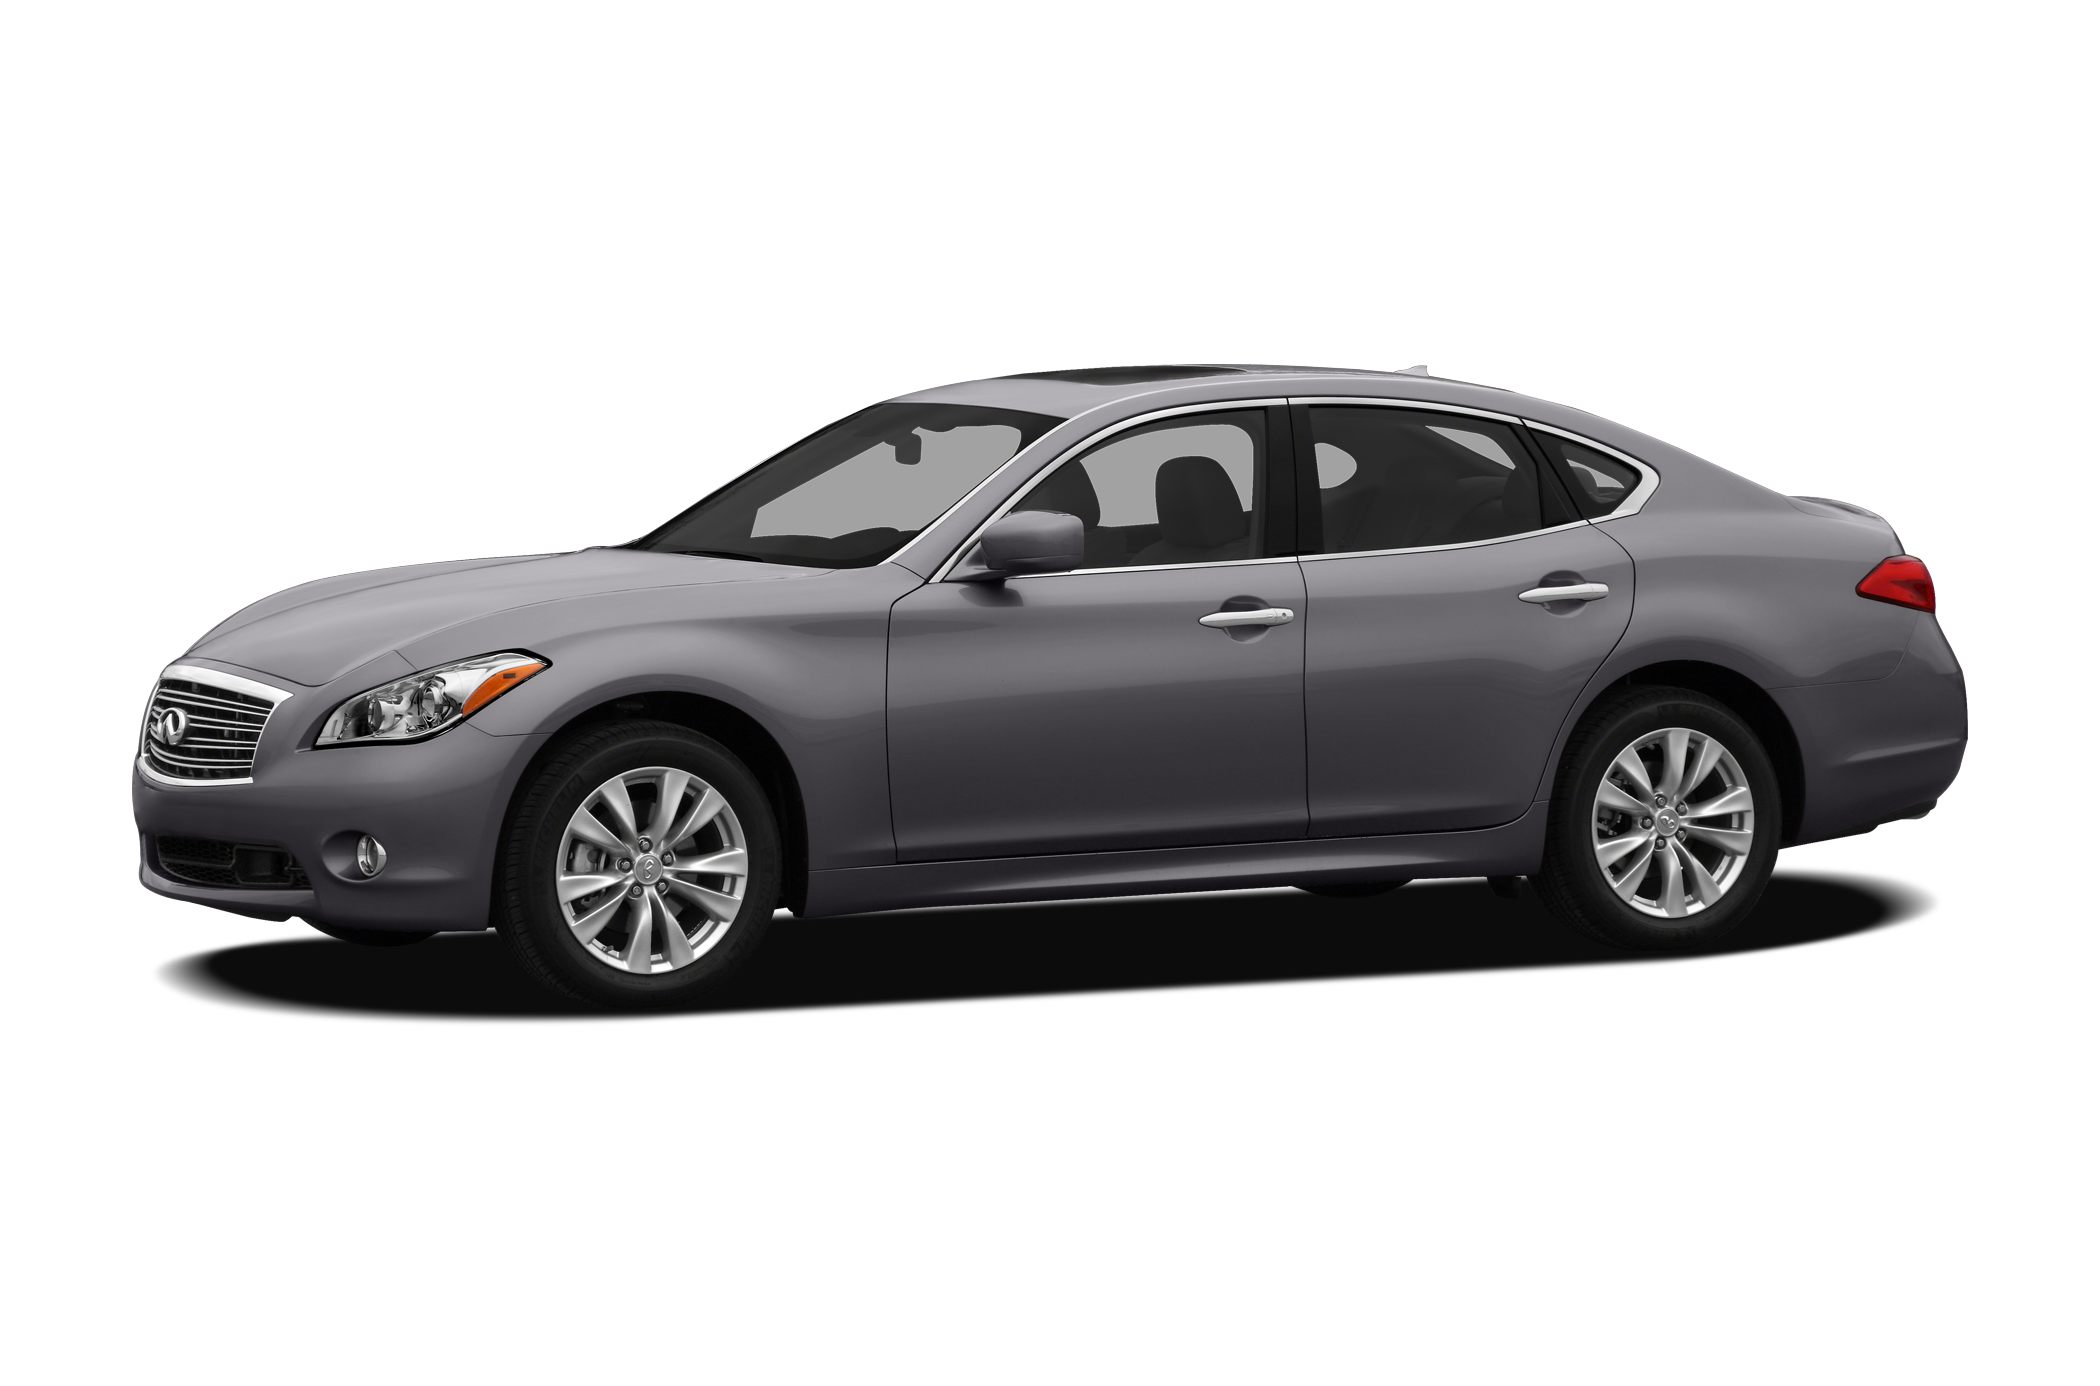 2012 Infiniti M37x Base Visit Best Auto Group online at bronxbestautocom to see more pictures of